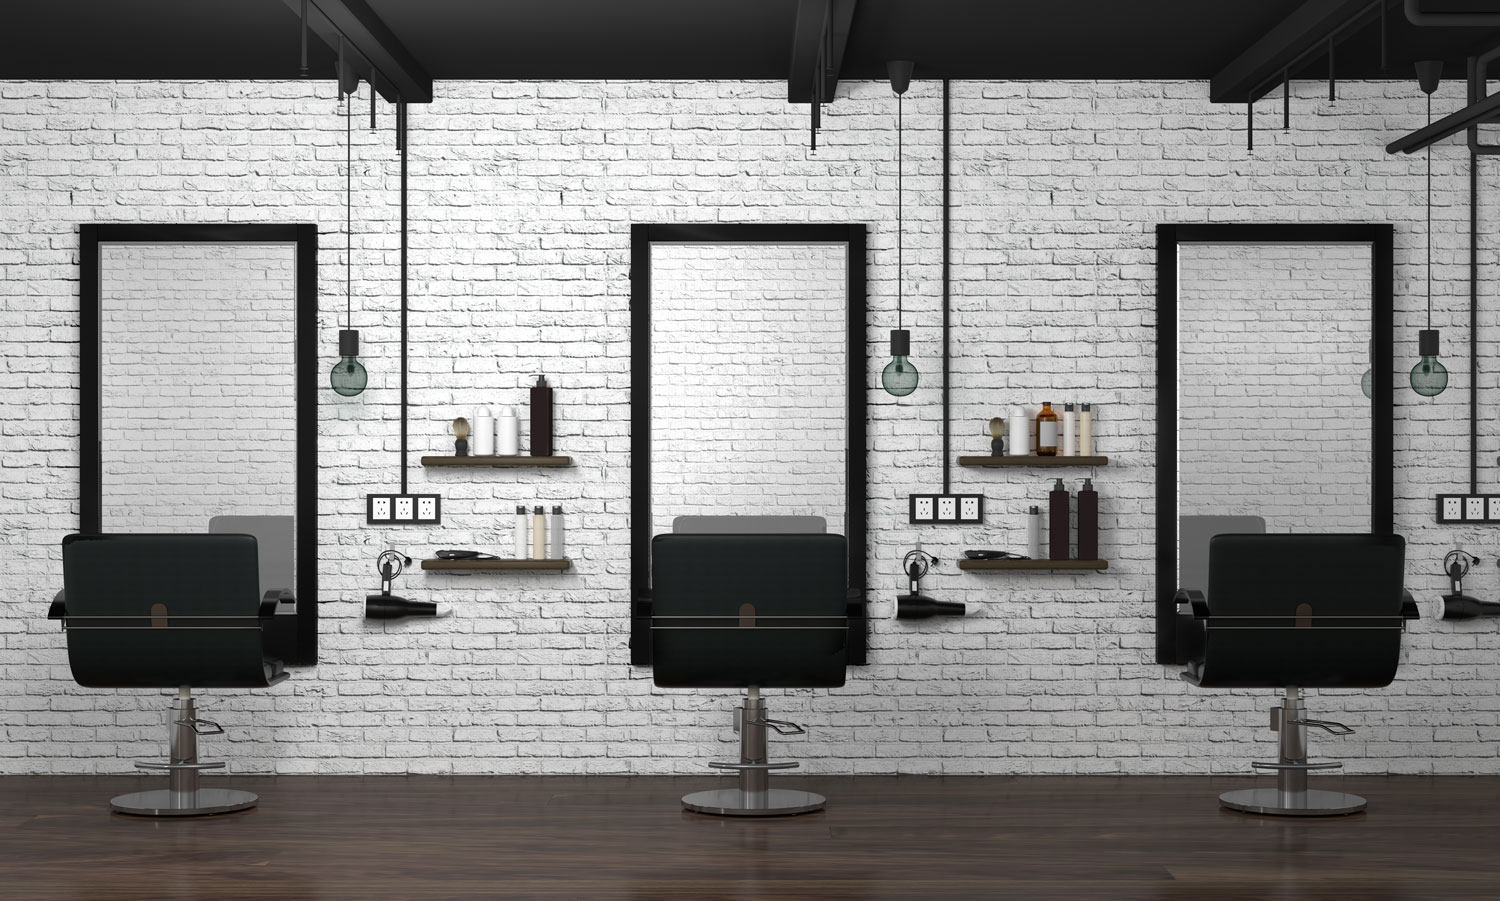 Design Thinking In Action: How One Hair Salon Franchise Innovated